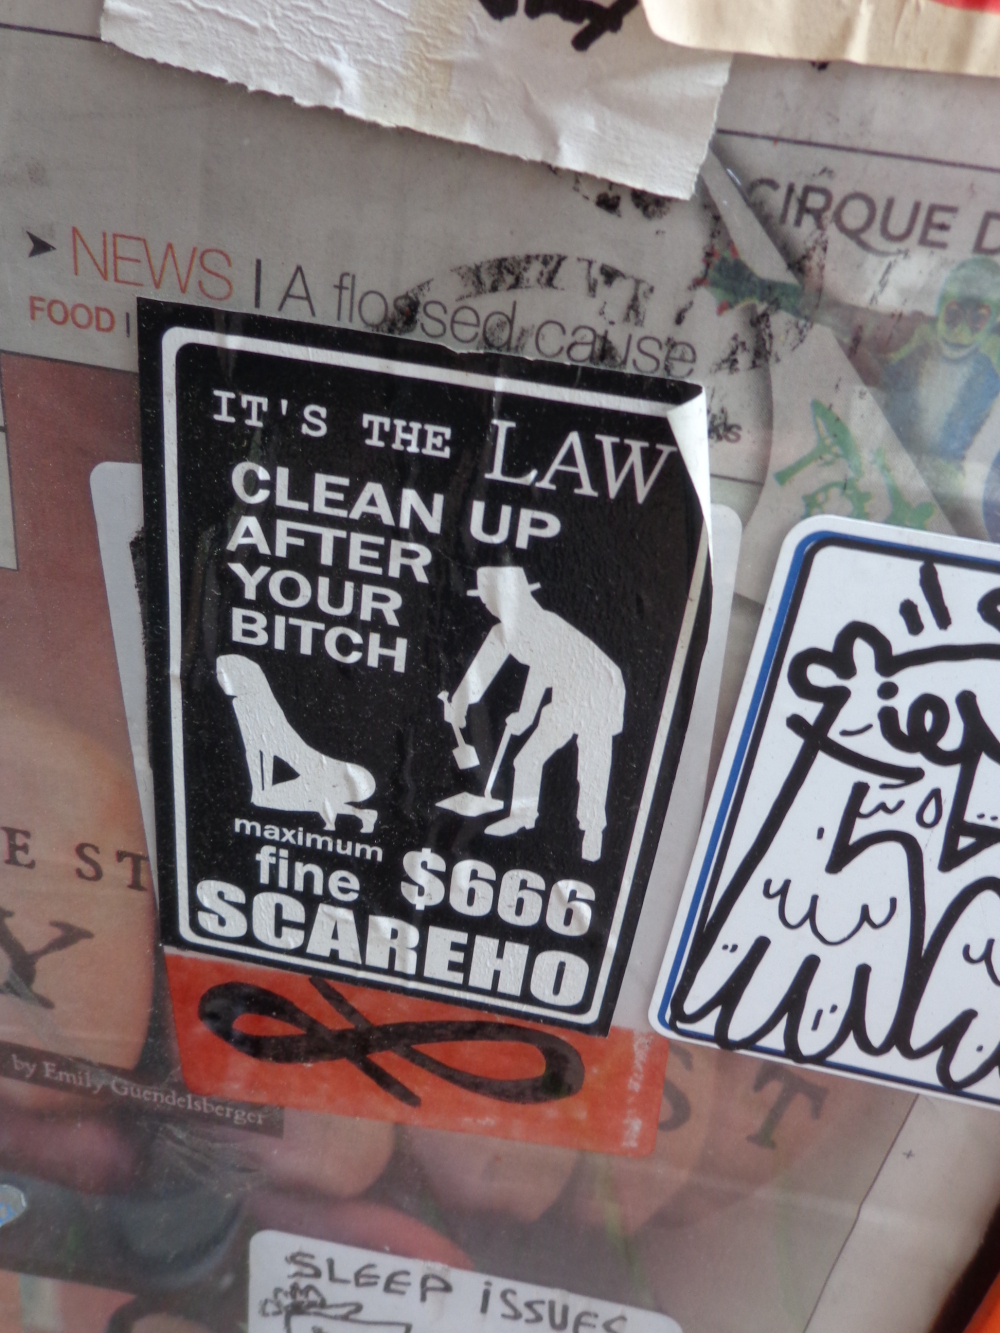 clean up after your bitch